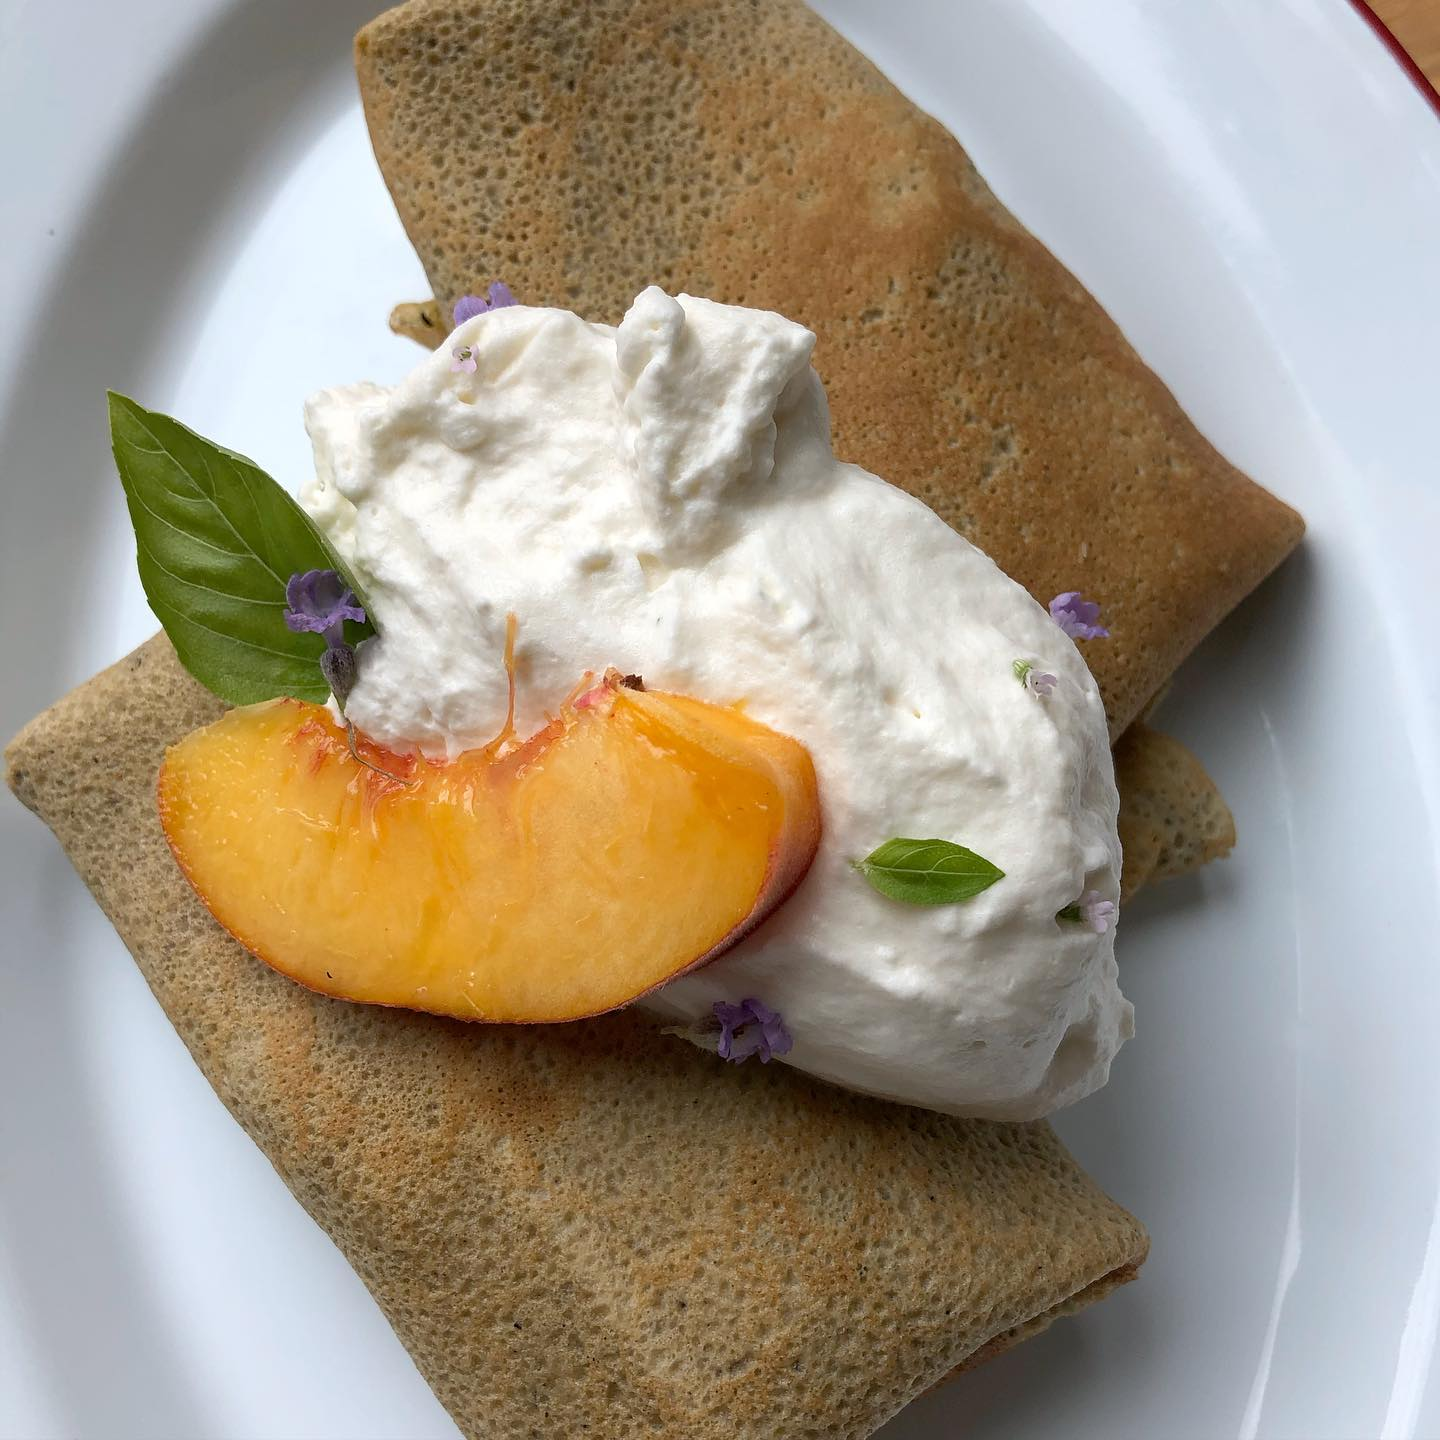 Peaches, Peaches, Peaches. Tis peak season! We serve them sliced in our Brunch Blintzes, with Fig Leaf infused whipped cream, for a mellow nutty flavor. #brunchlife #threespringsfruitfarm